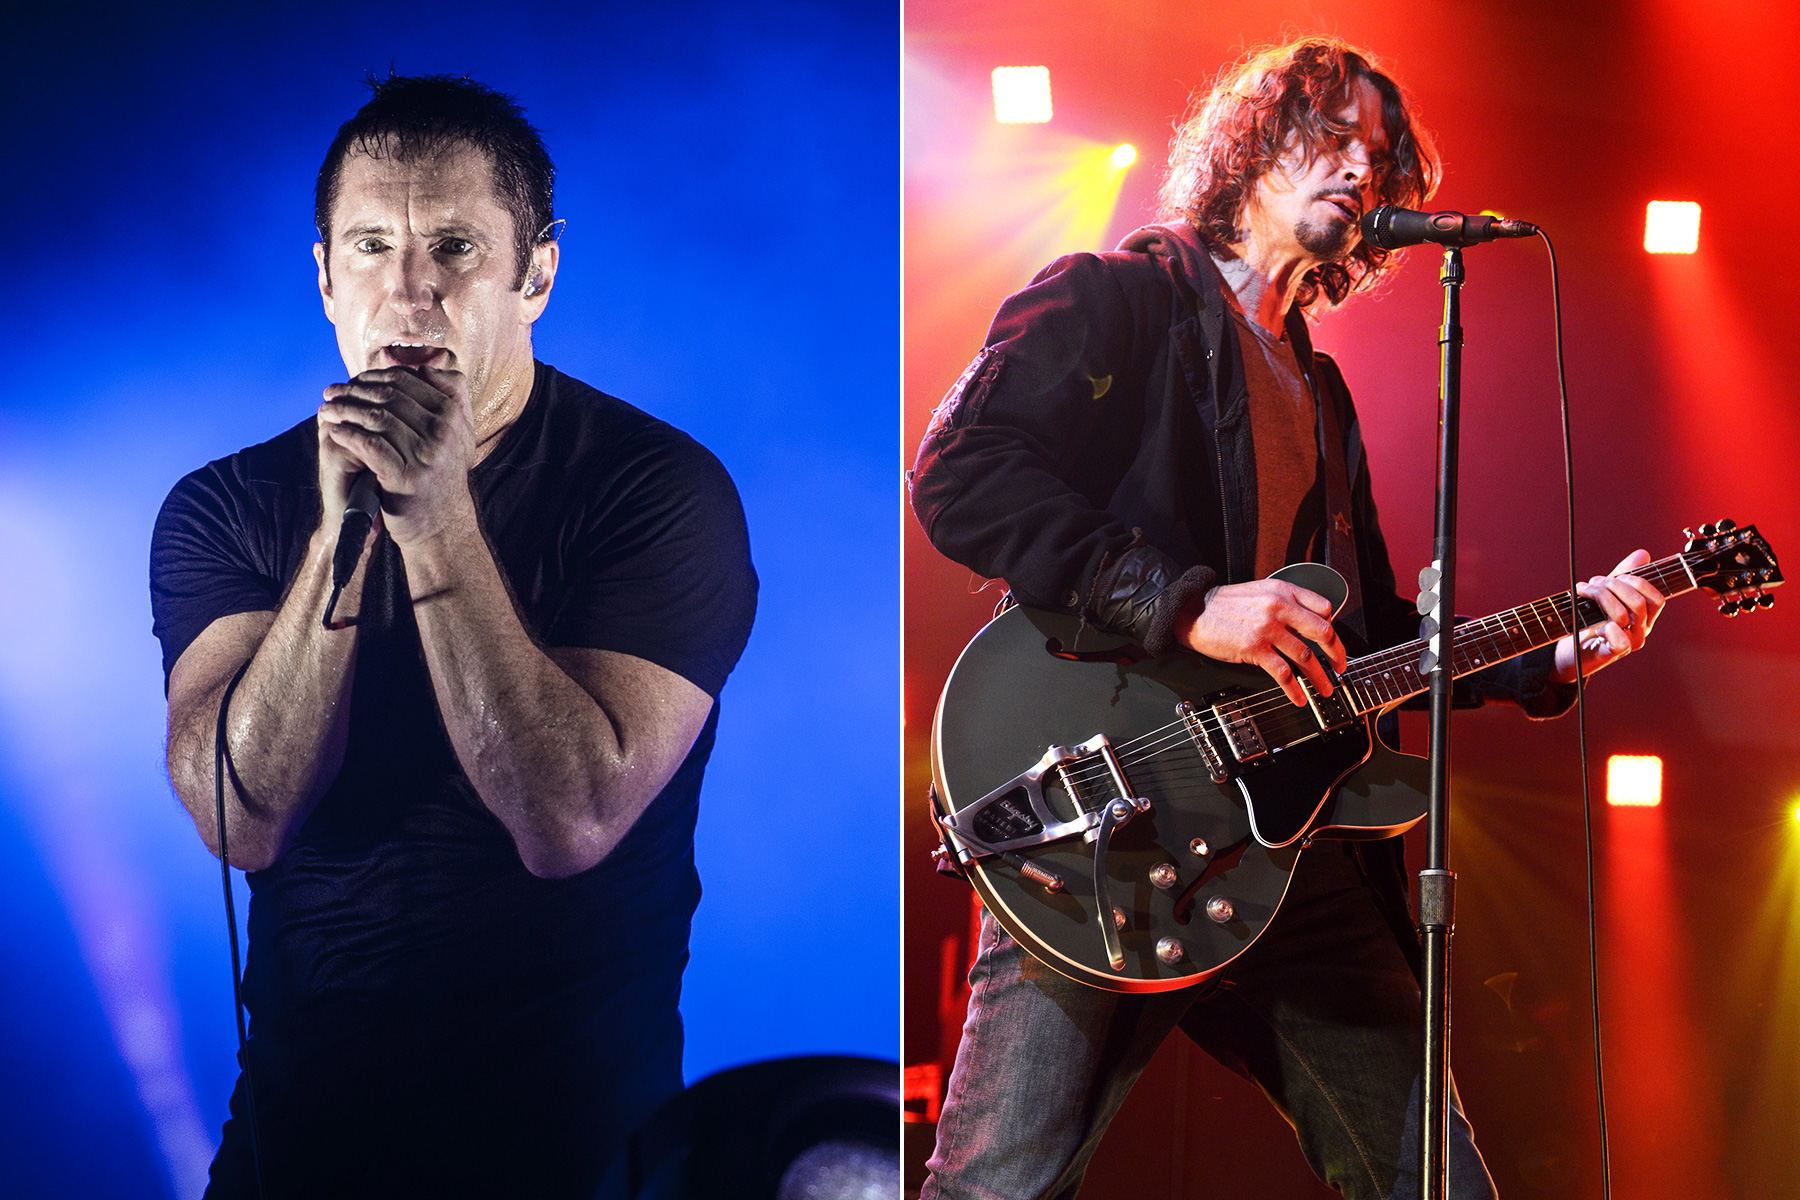 Nine inch nails tour with soundgarden